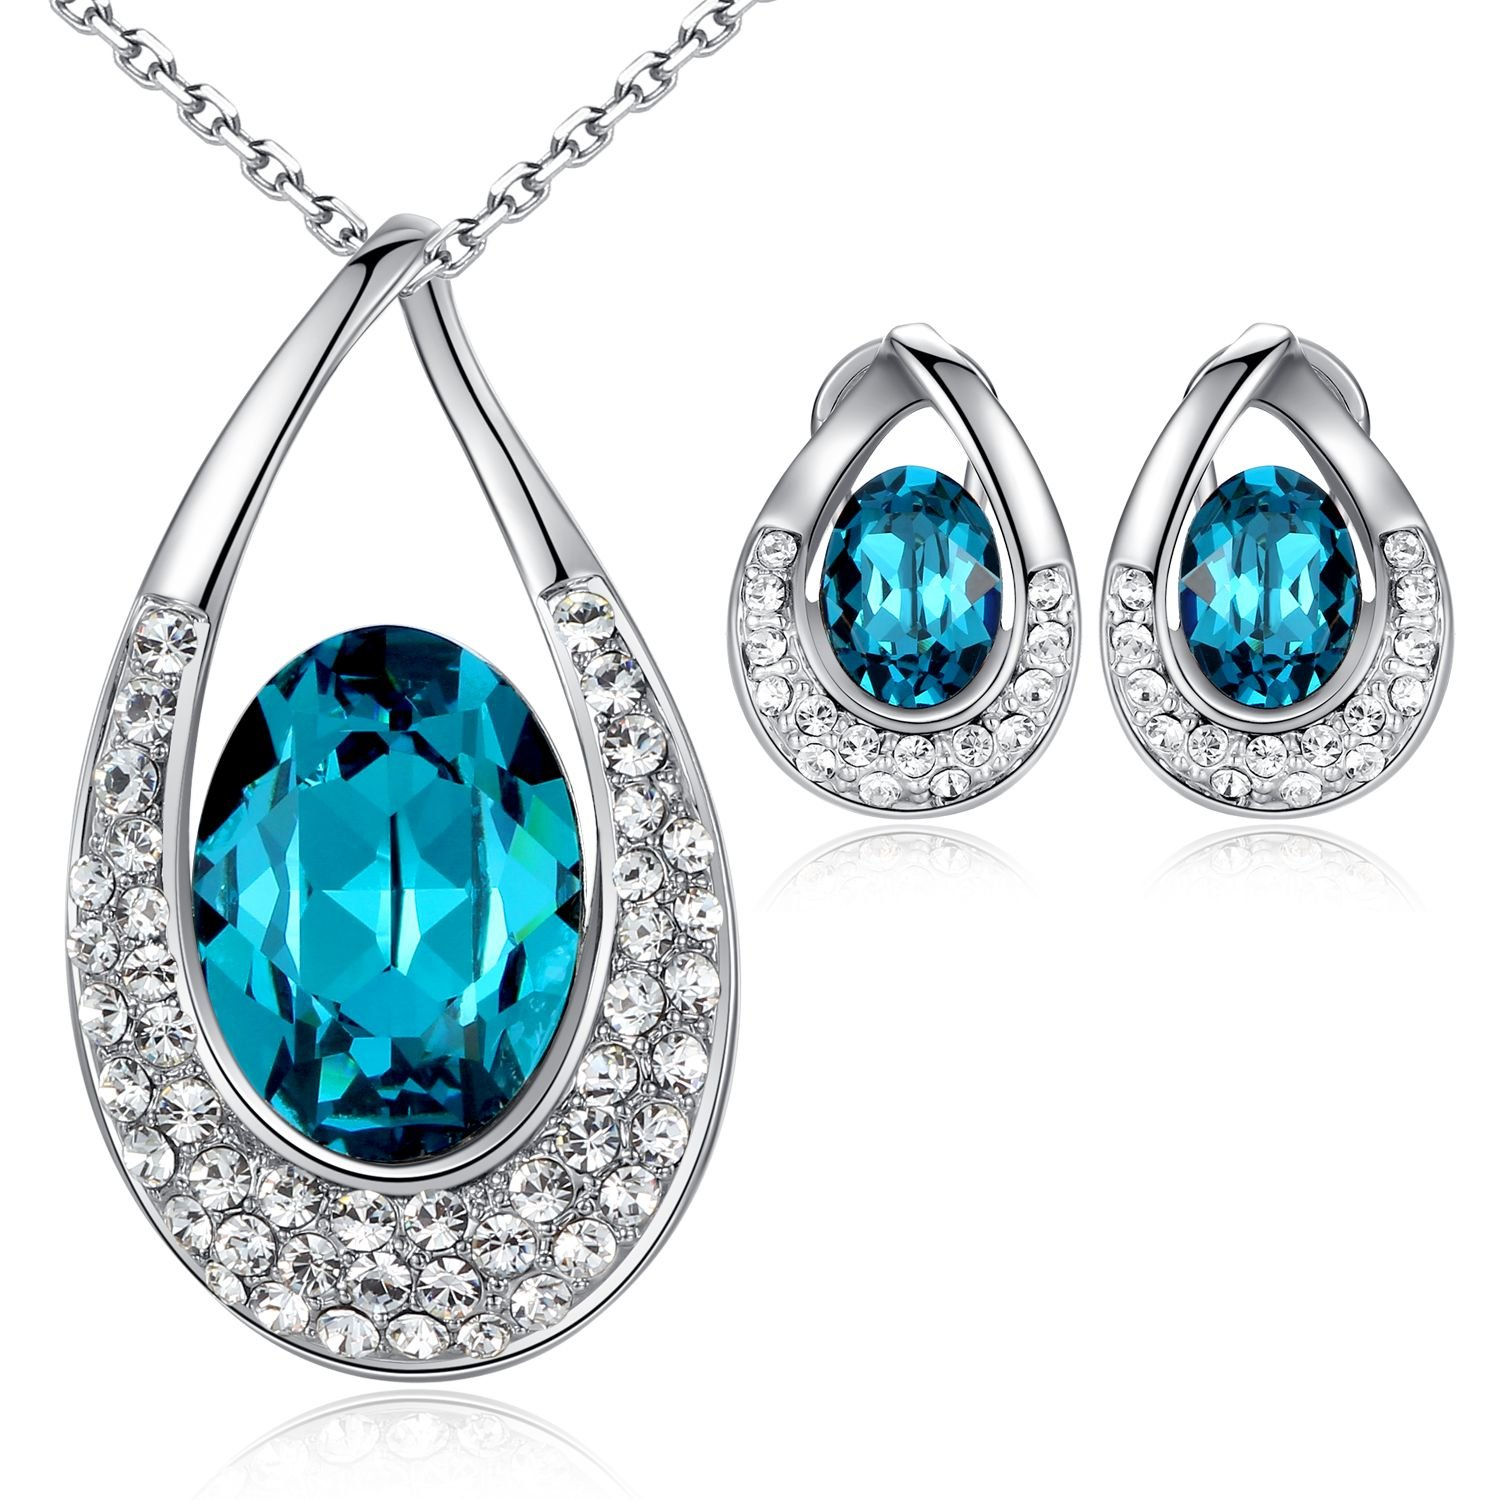 Leafael [Presented by Miss New York Angel's Teardrop Made with Swarovski Crystals Blue Zircon Jewelry Set Earrings Necklace, 18+ 2'', White Gold Pla